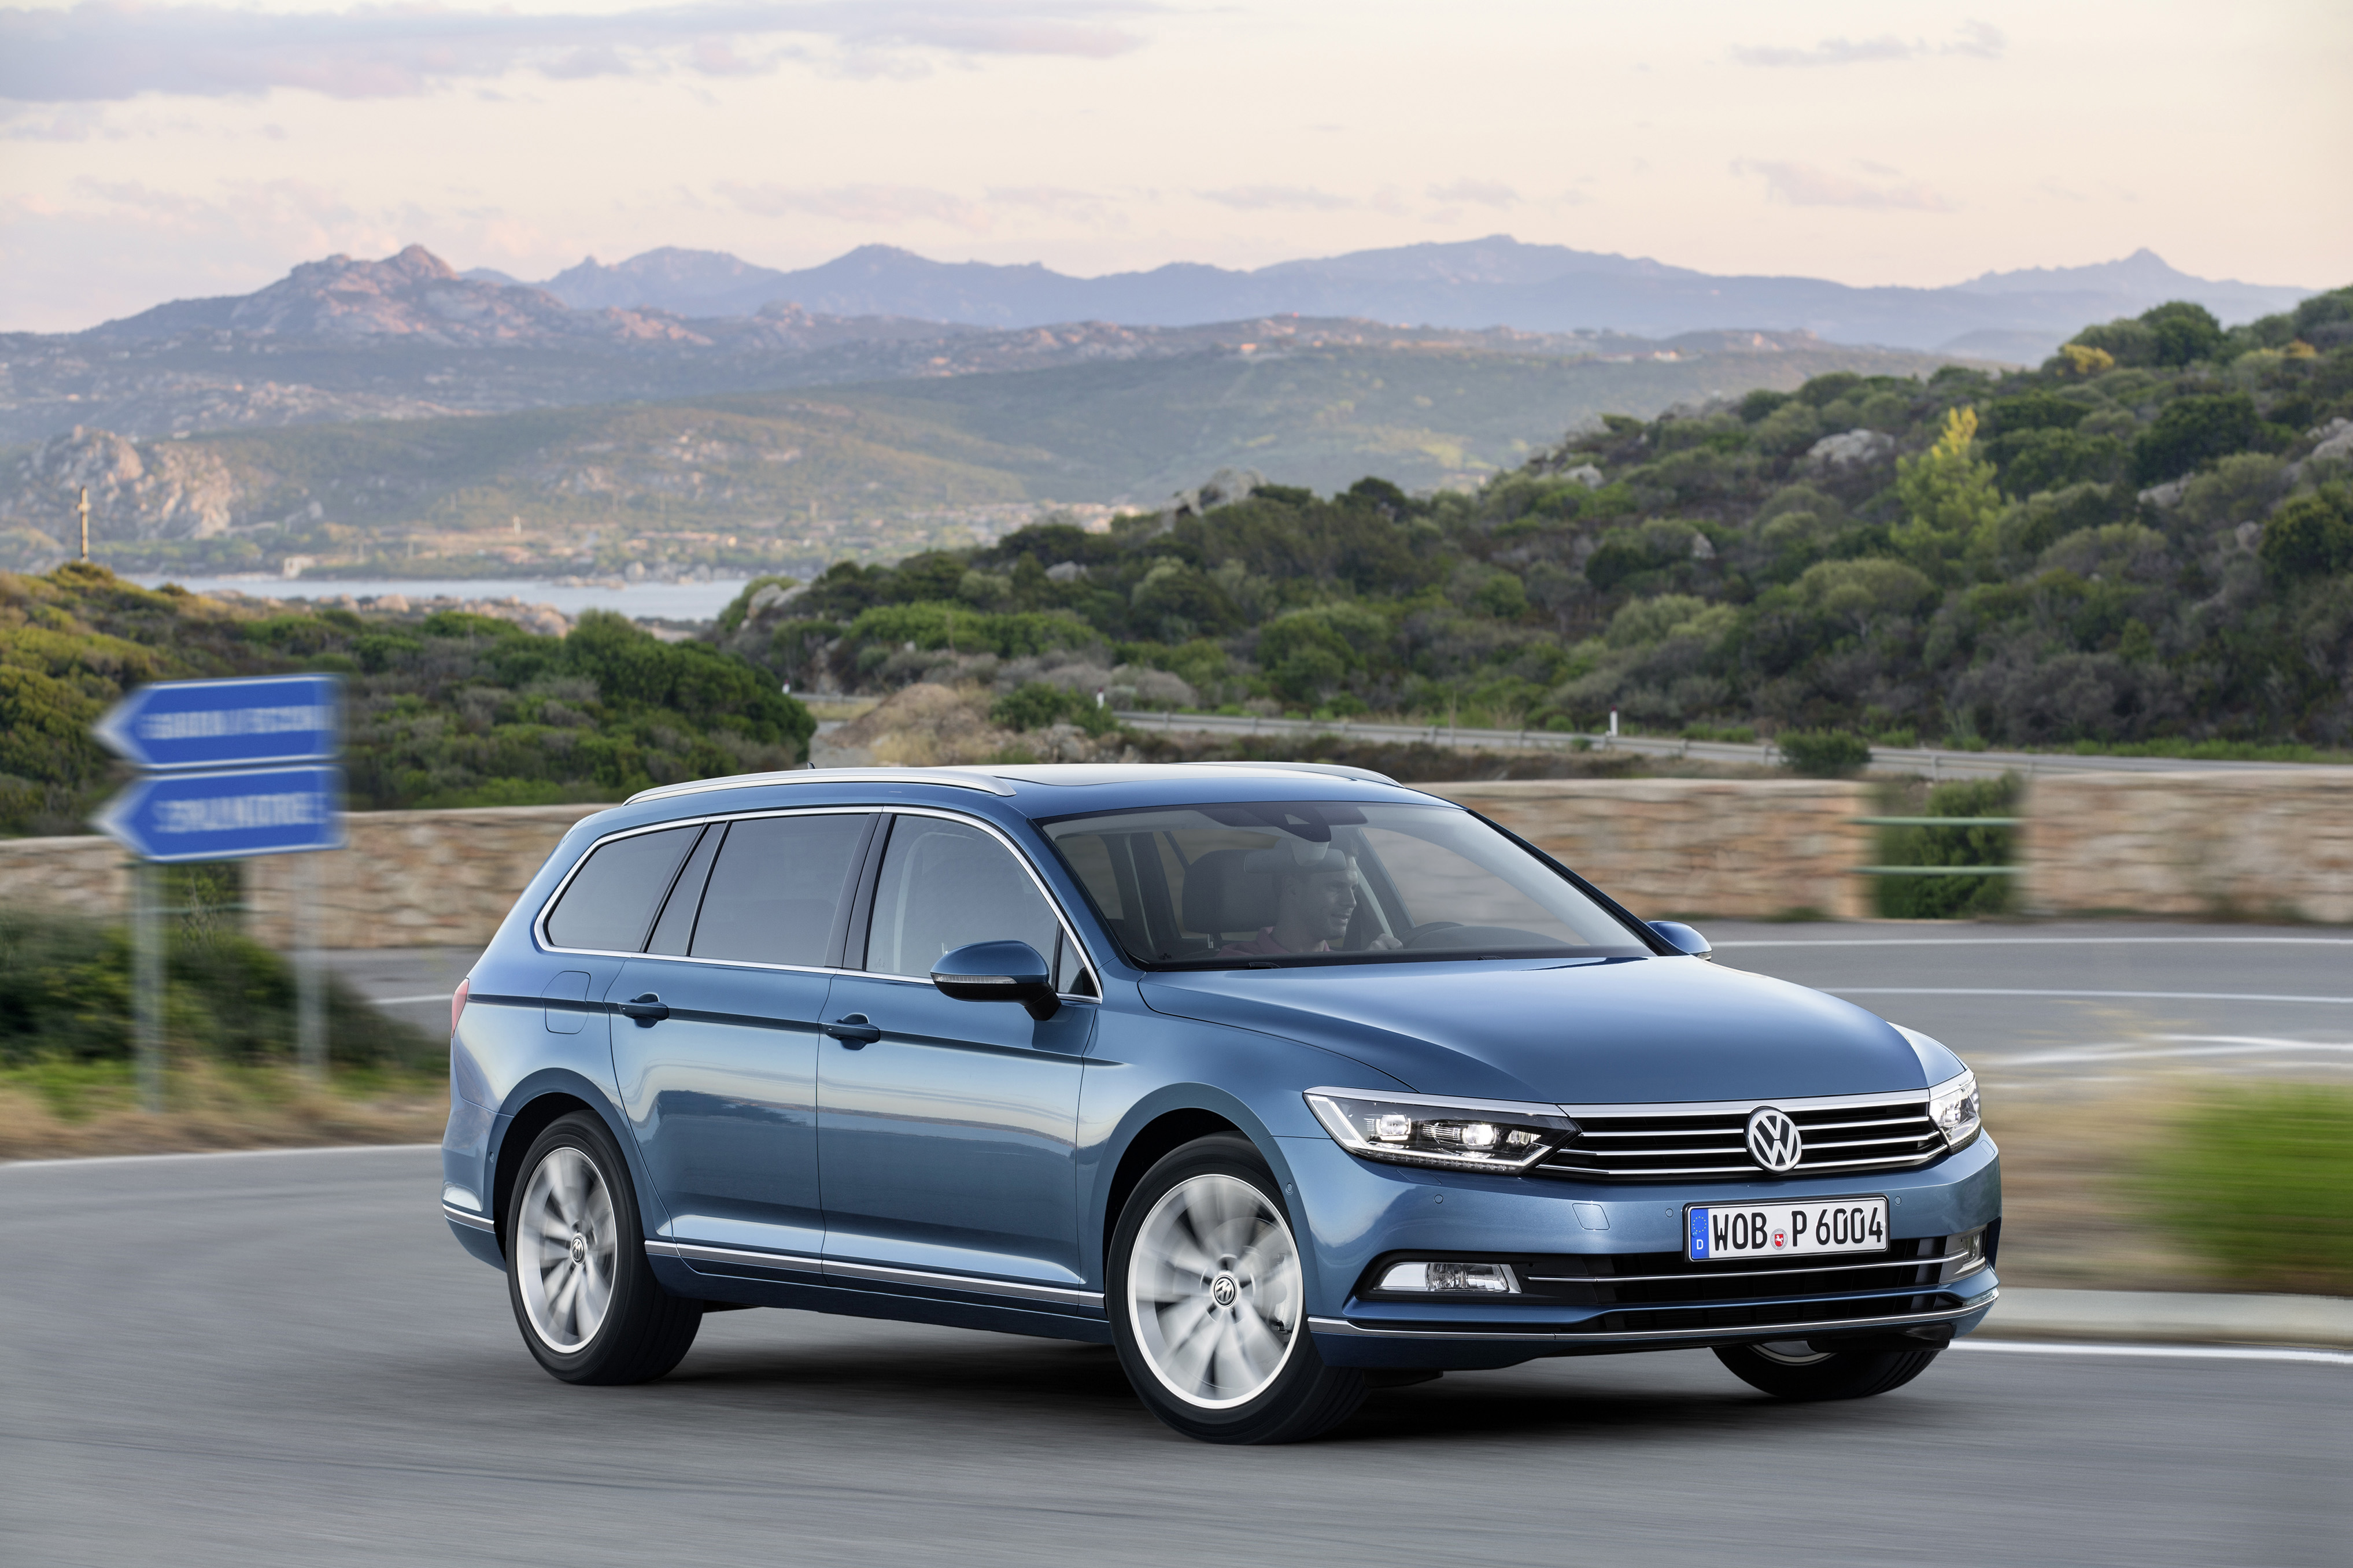 2015 volkswagen passat variant b7 pictures. Black Bedroom Furniture Sets. Home Design Ideas